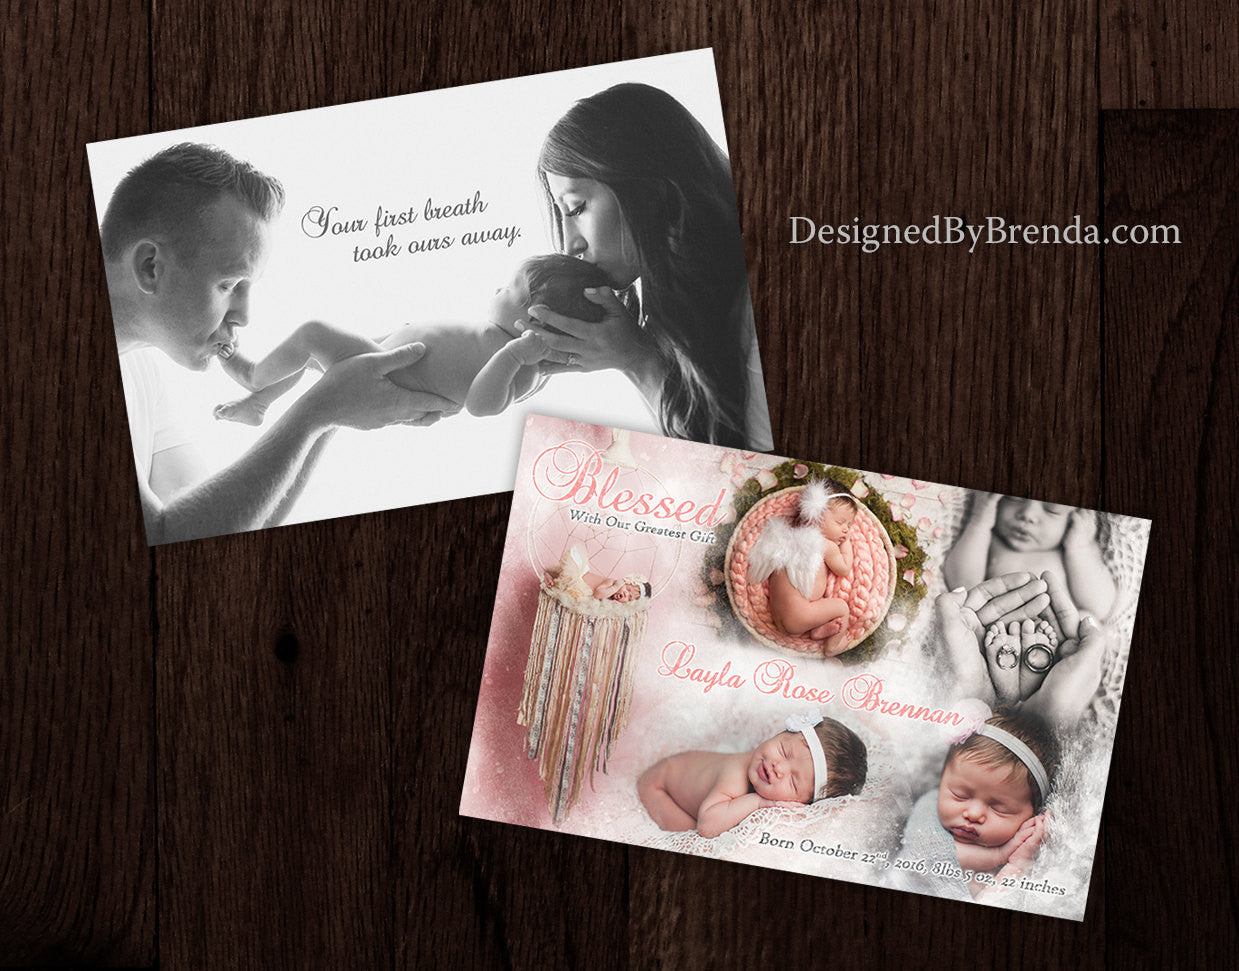 Combined Birth Announcement & Holiday Card with Blended Photo ...